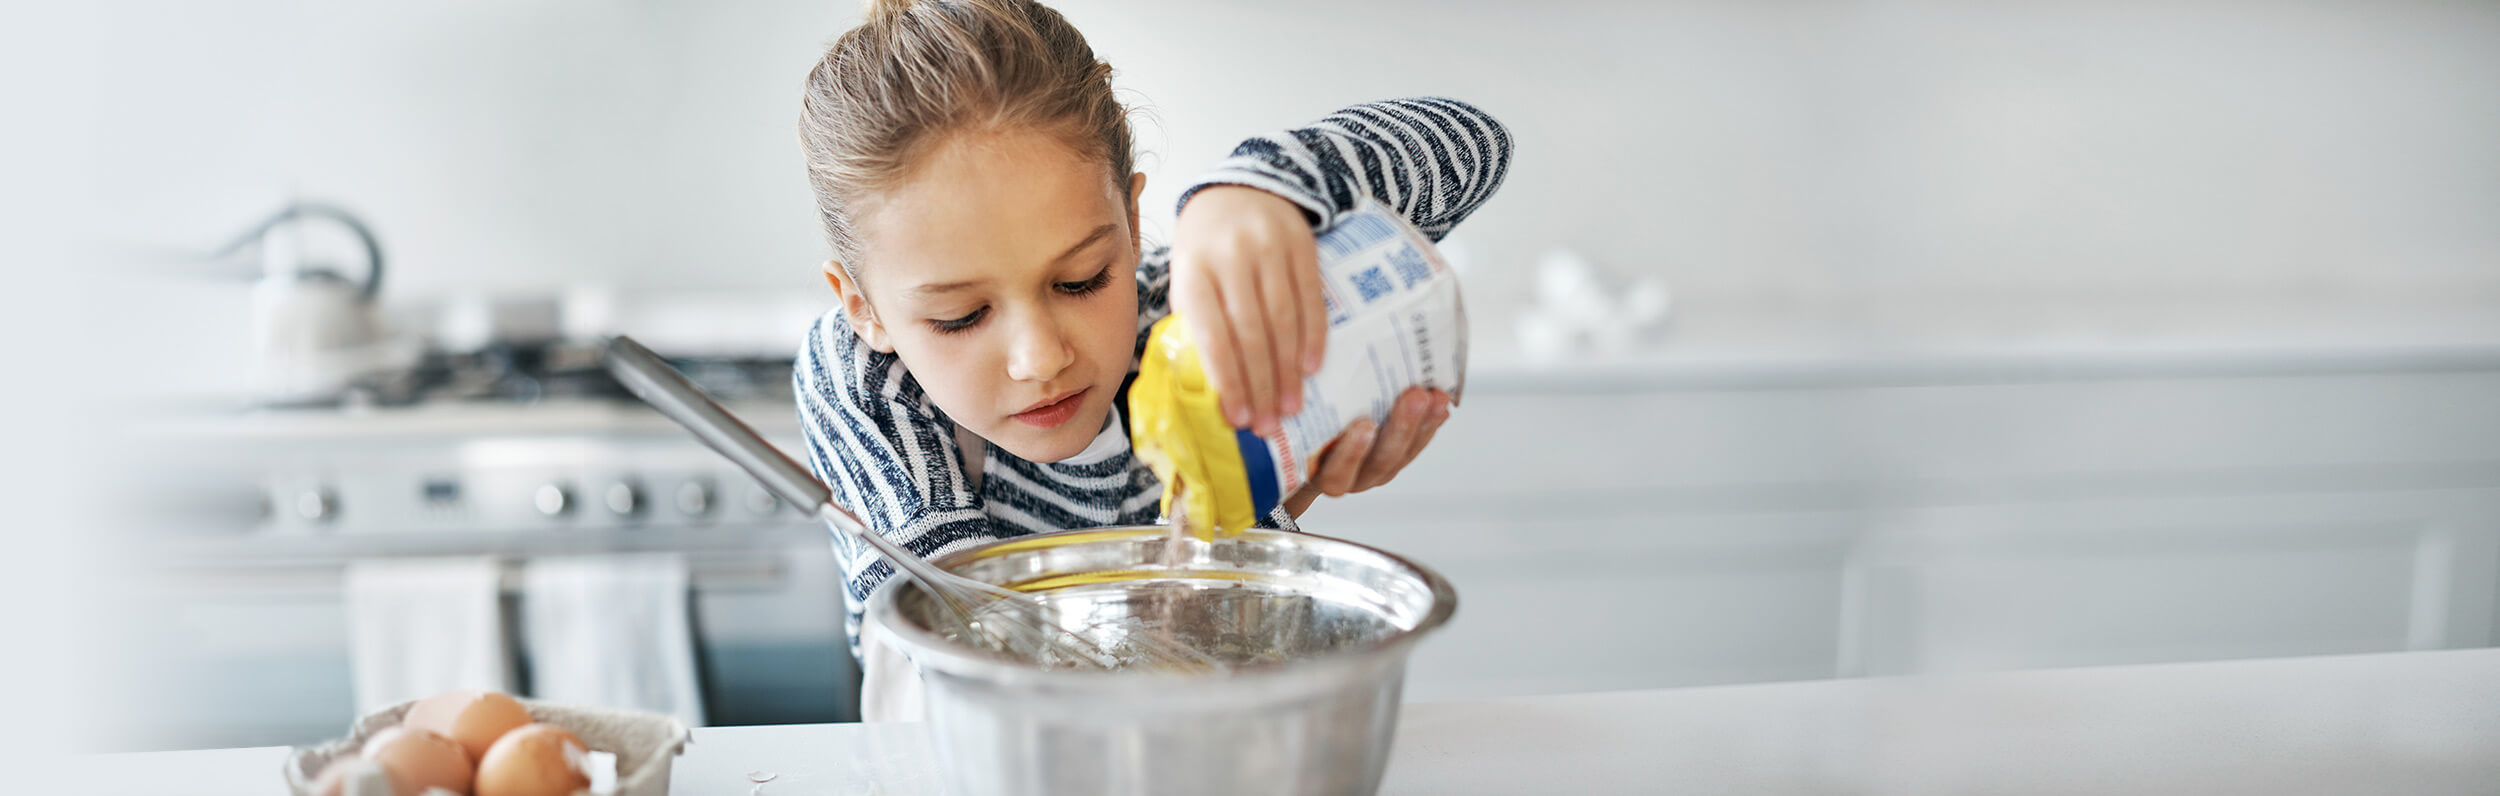 Child Care Food Program - child pouring into a mixing bowl - Novick Childcare